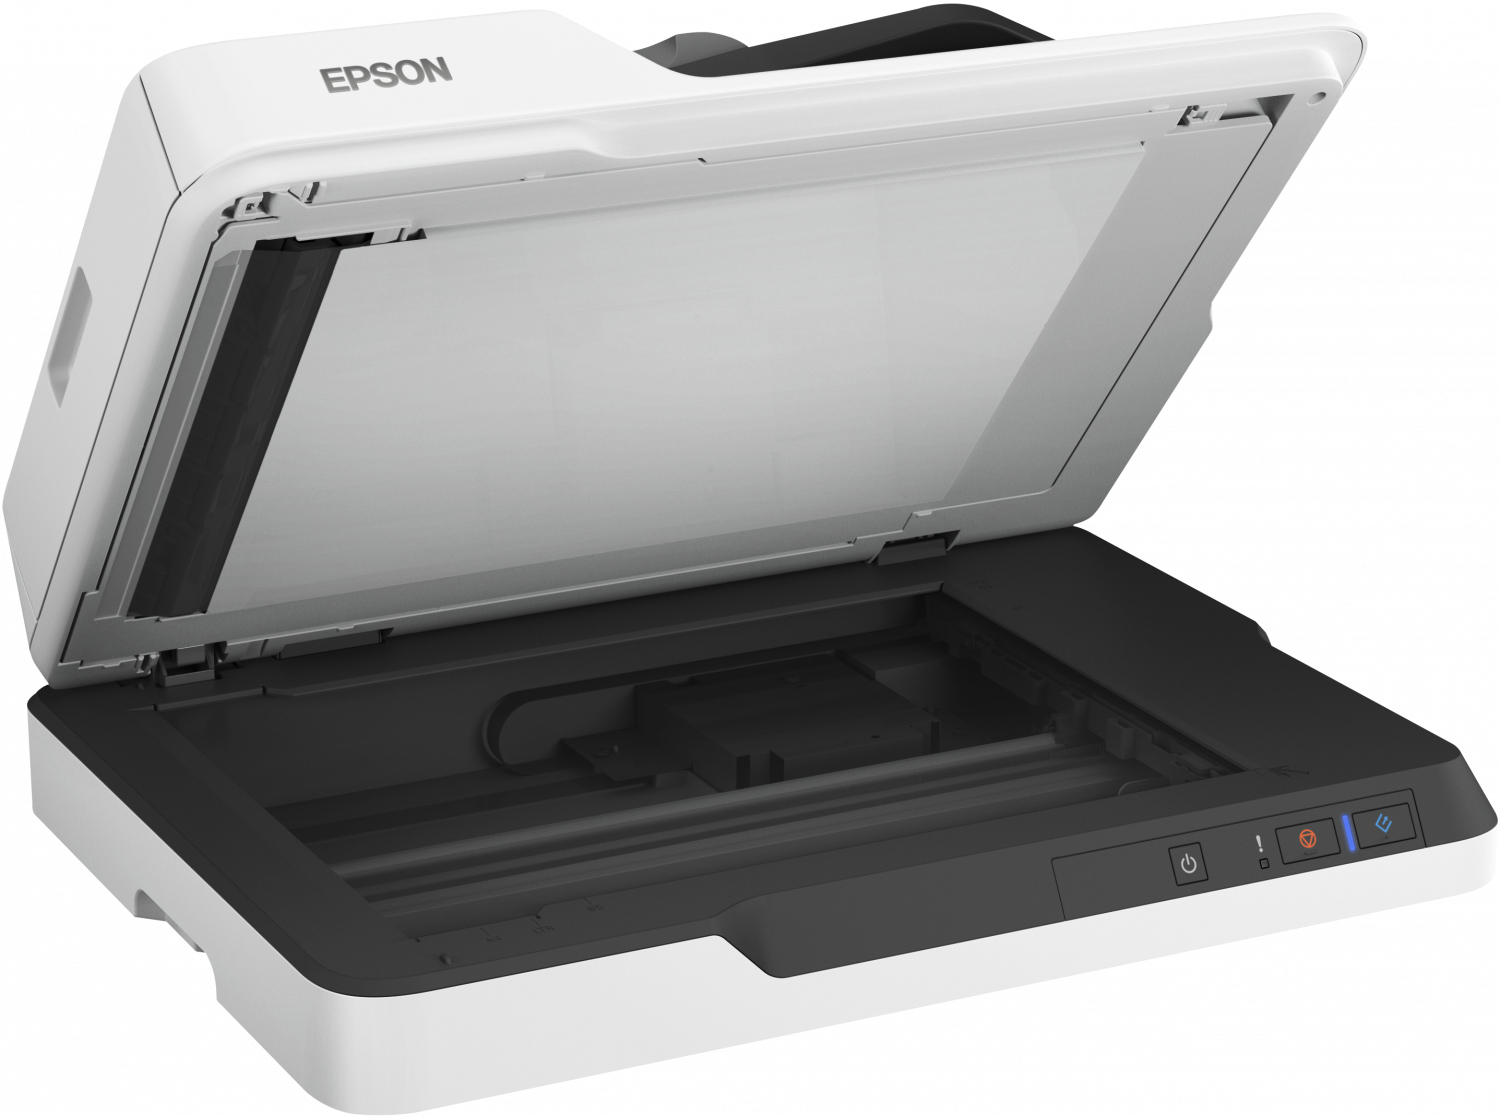 EPSON WORKFORCE DS-1660W FLATBED SCANNER 600 X 600DPI A4 BLACK,WHITE